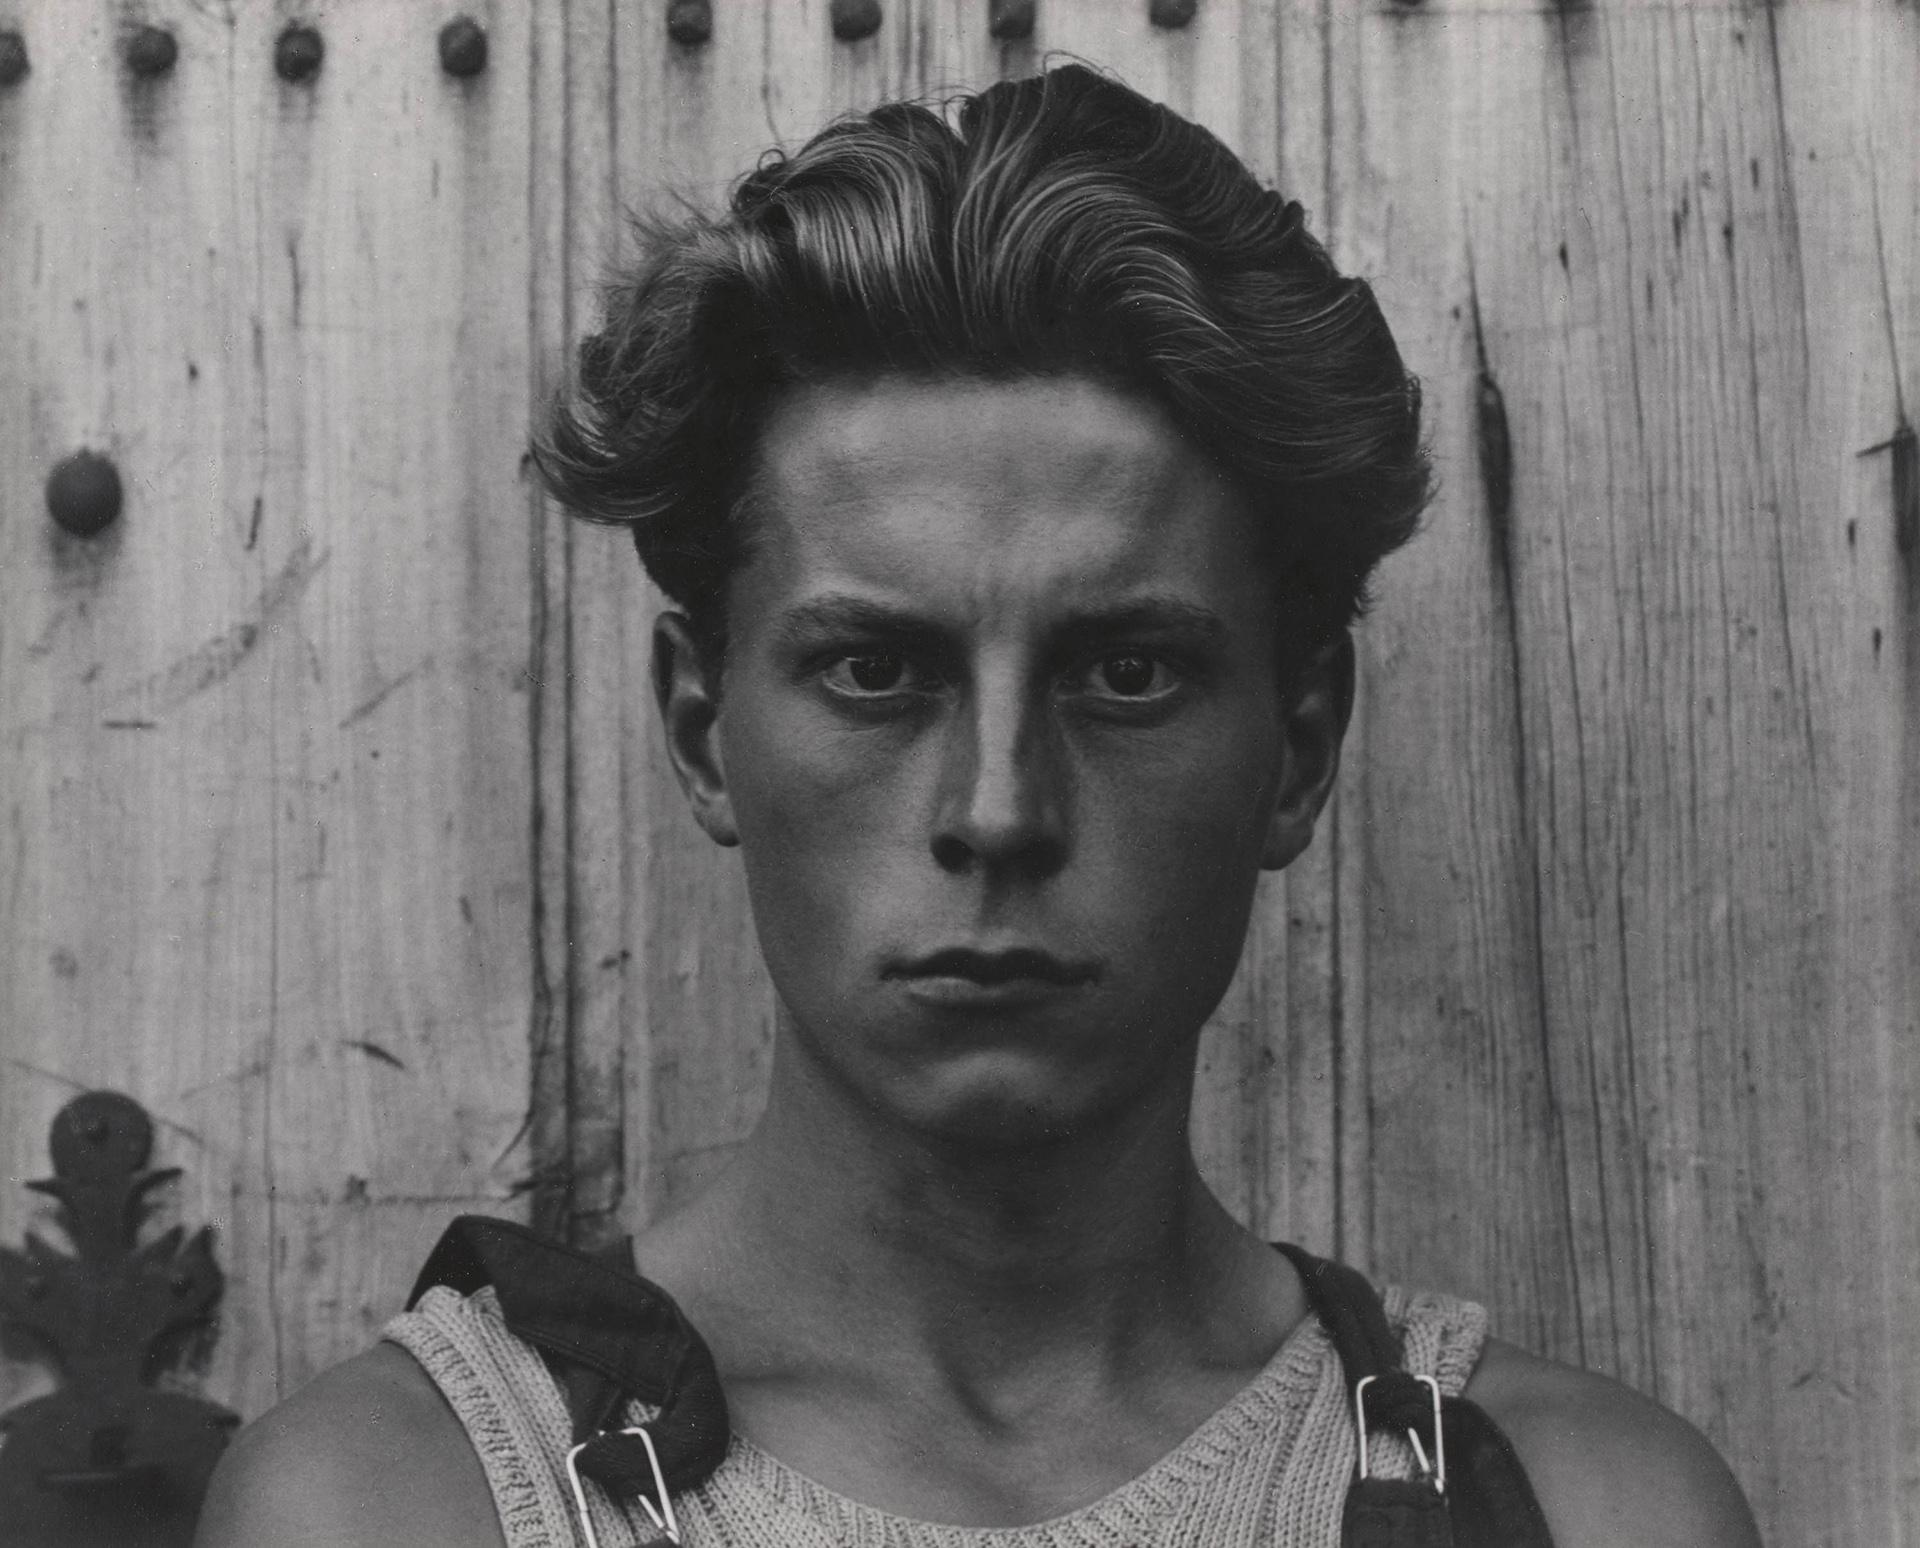 Paul Strand. Young Boy, Gondeville, Charente, France, 1951. Collection of Robin and Sandy Stuart. © Aperture Foundation, Inc. Paul Strand Archive.